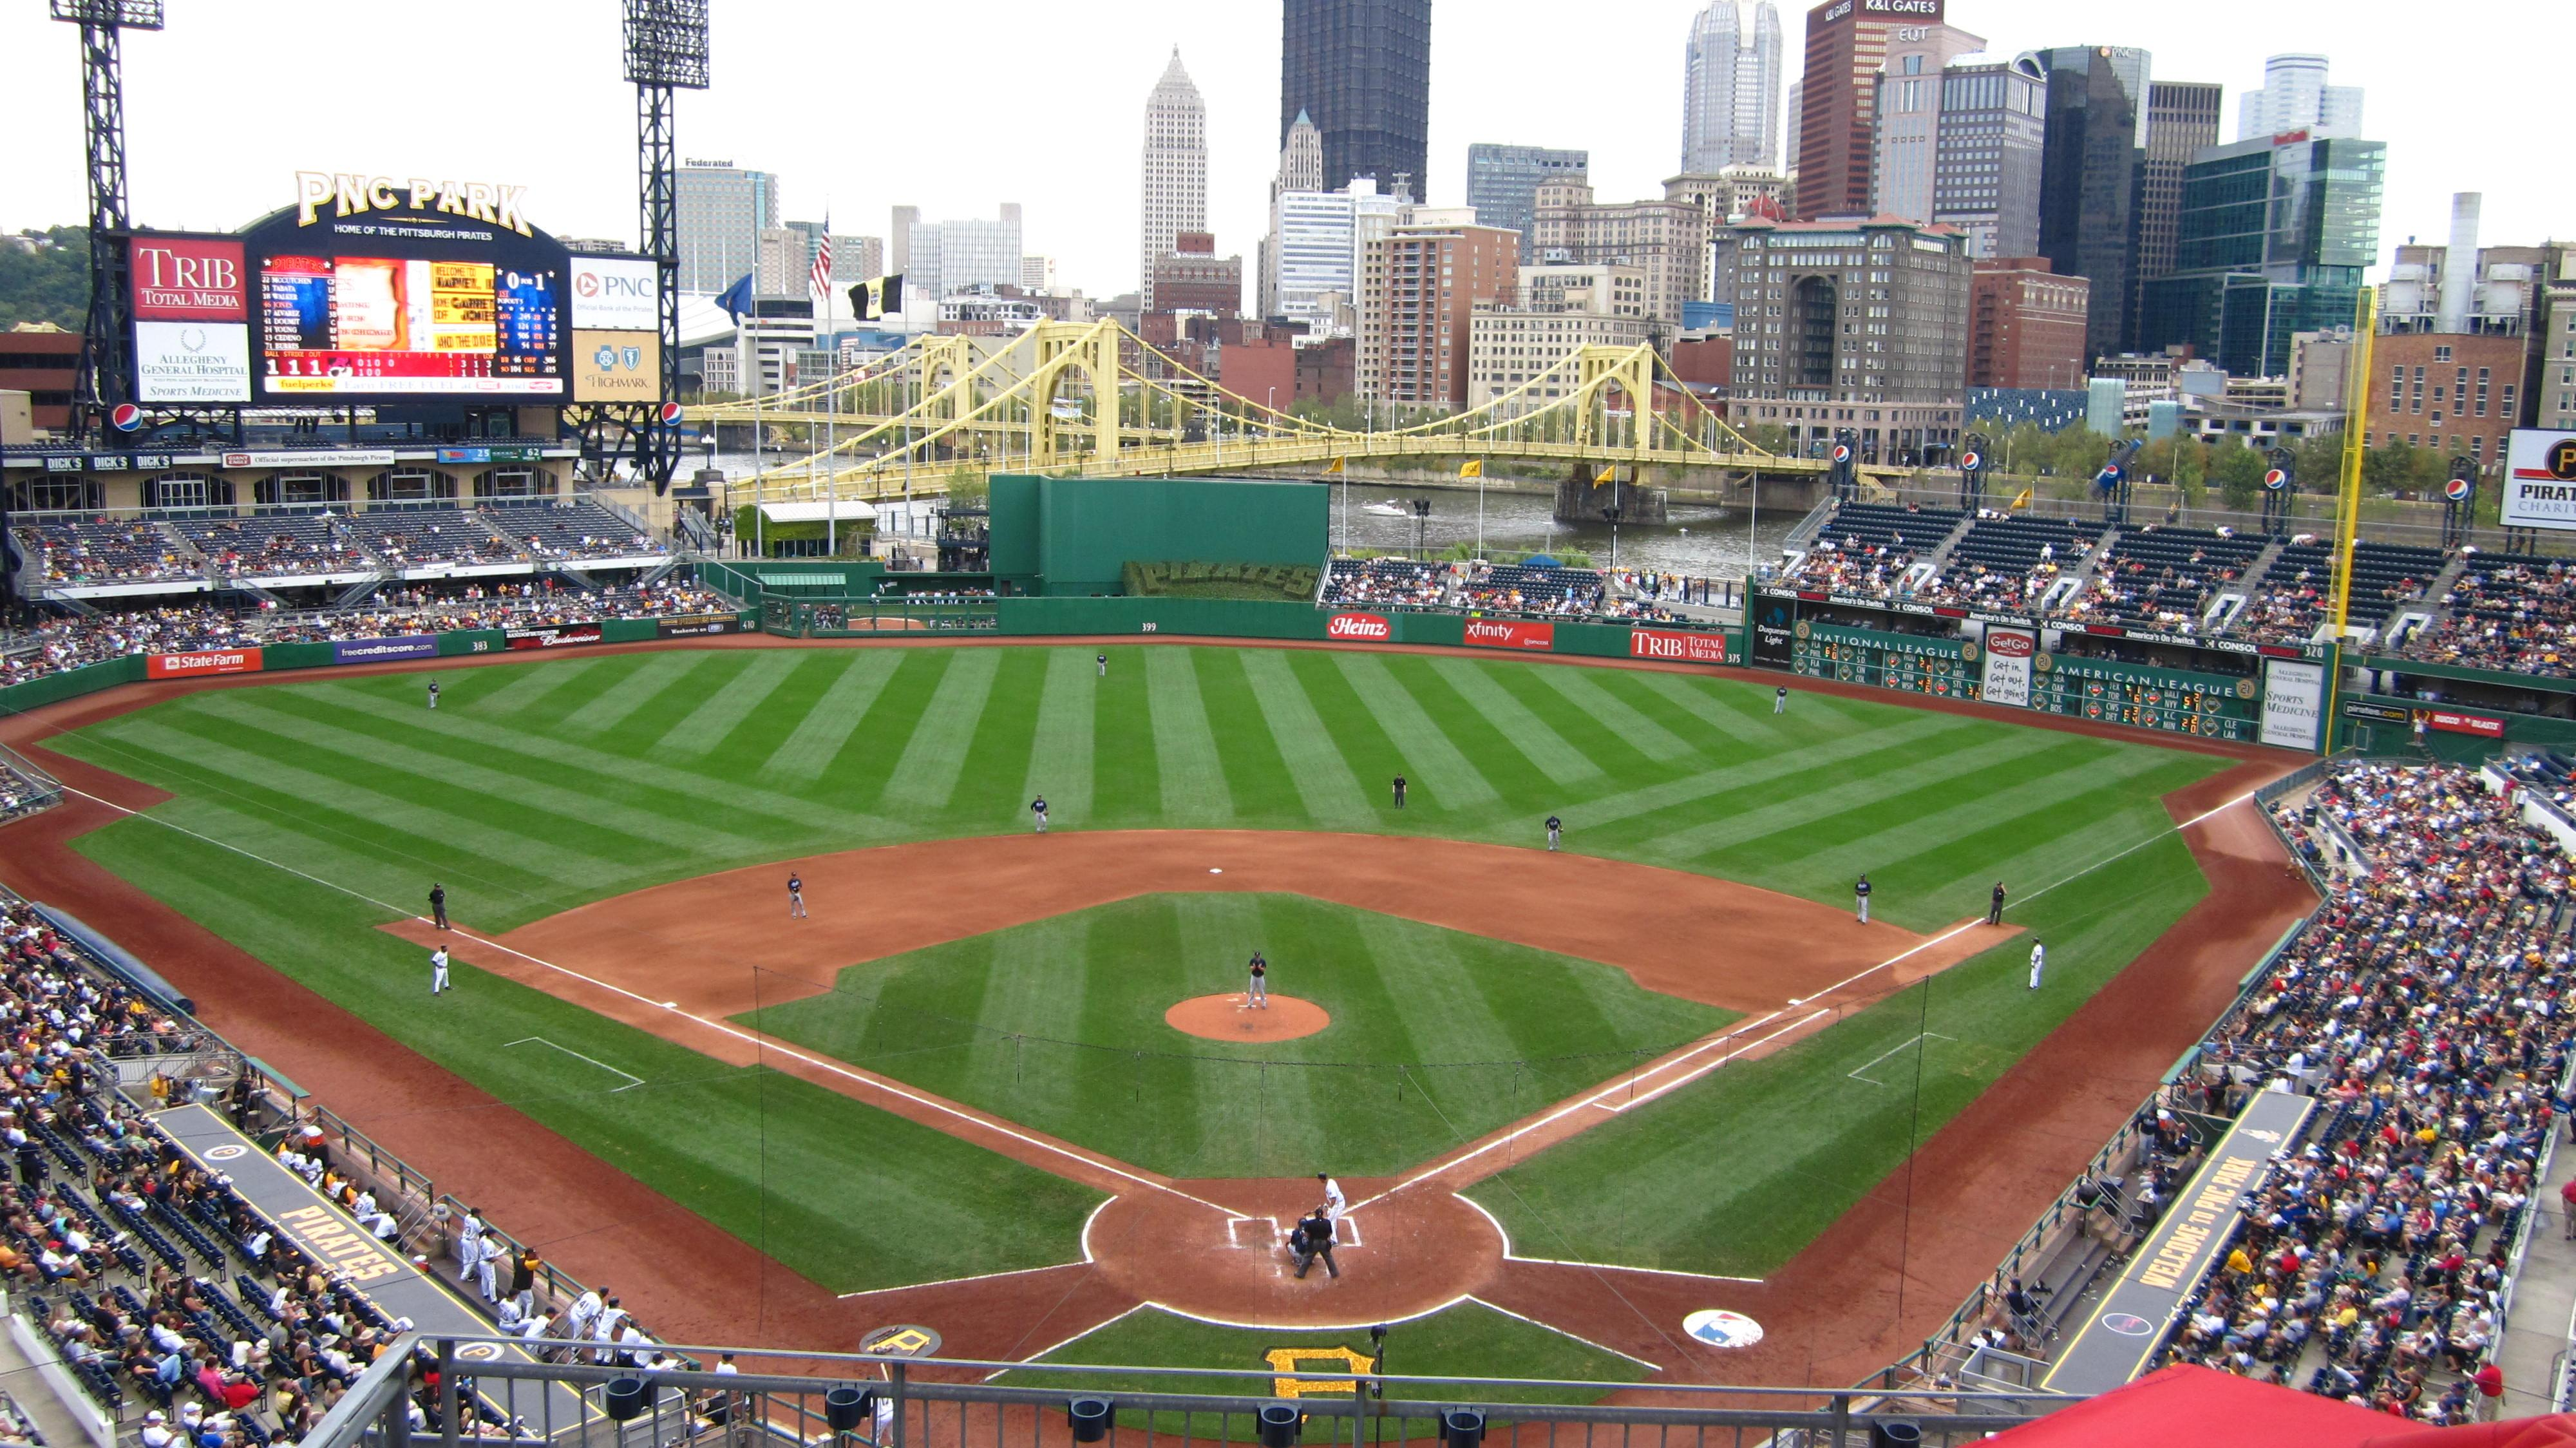 PNC Park Section 316 Row A Seat 25